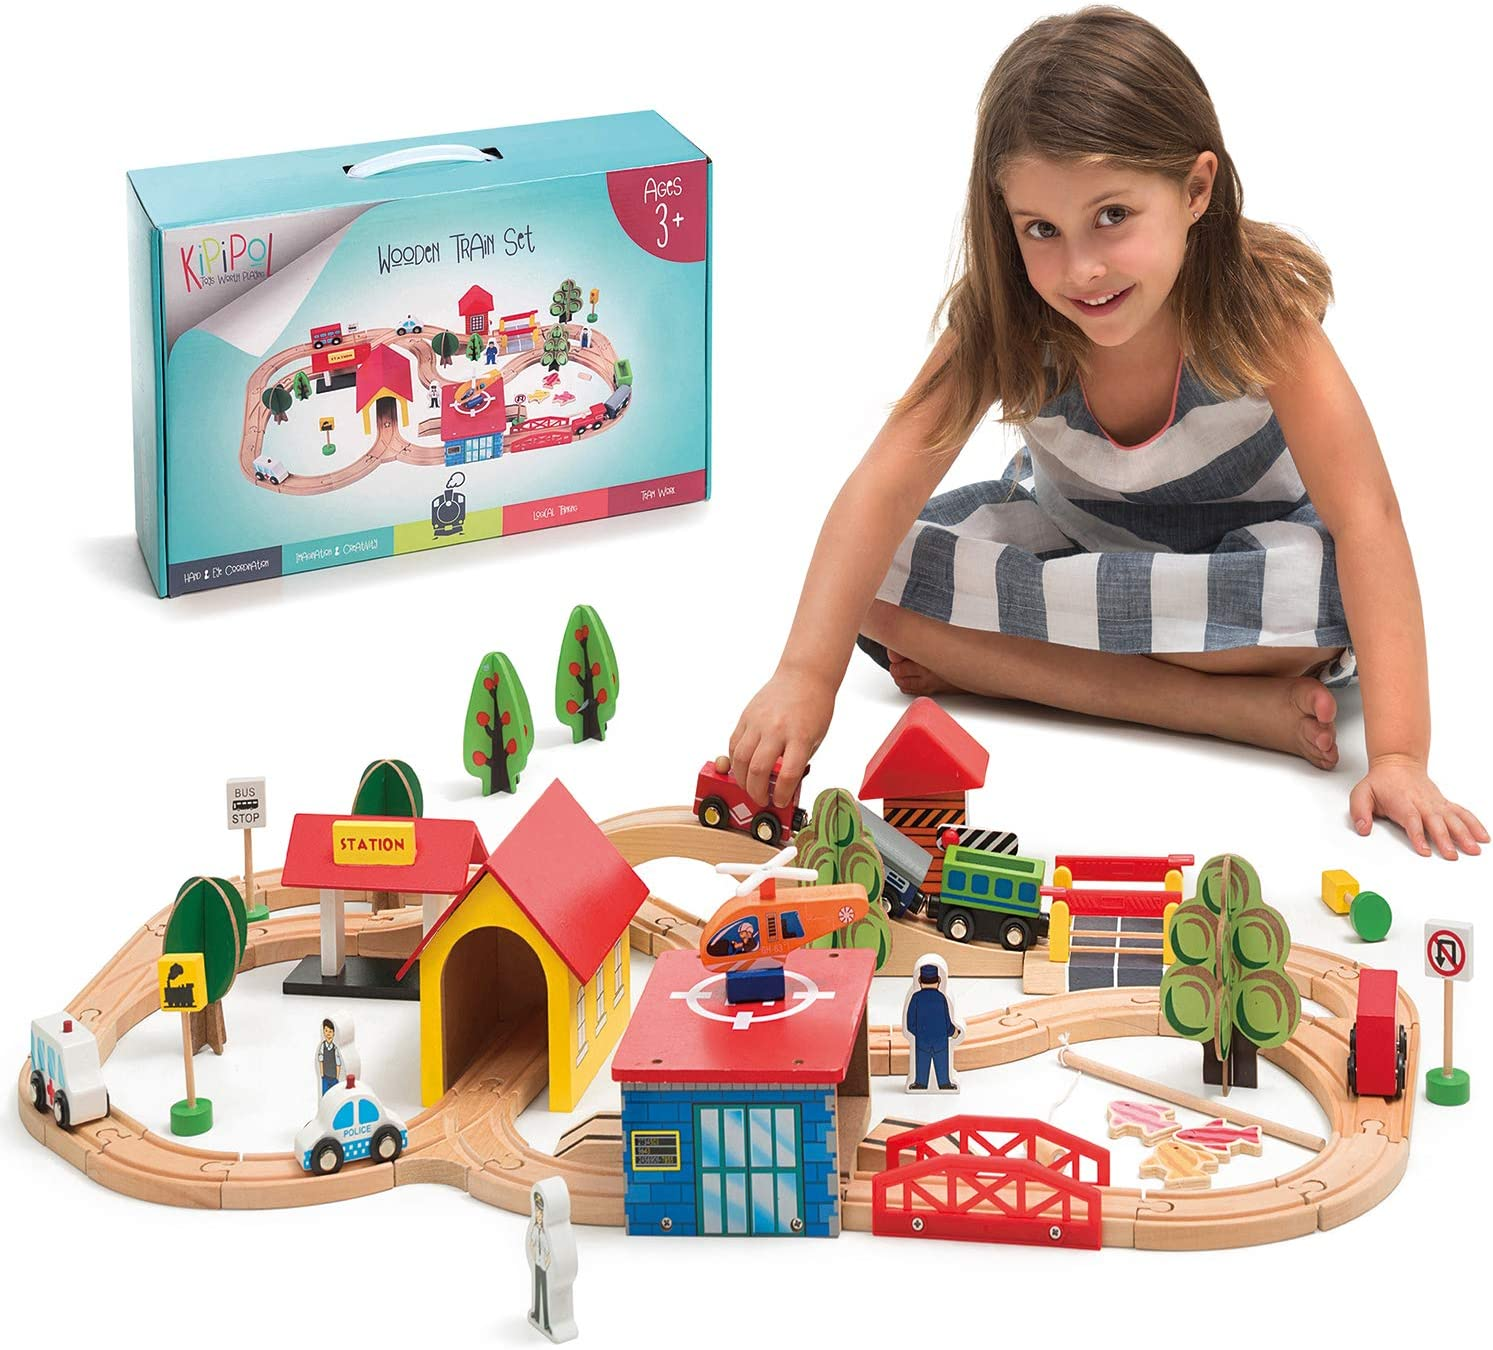 Amazon.com: KipiPol Wooden Train Tracks Set for Kids, Toddler Boys and  Girls 3, 4, 5 Years Old and Up - 69 Pieces – Premium Wood Construction Toys  - Fits Thomas, Brio, IKEA,